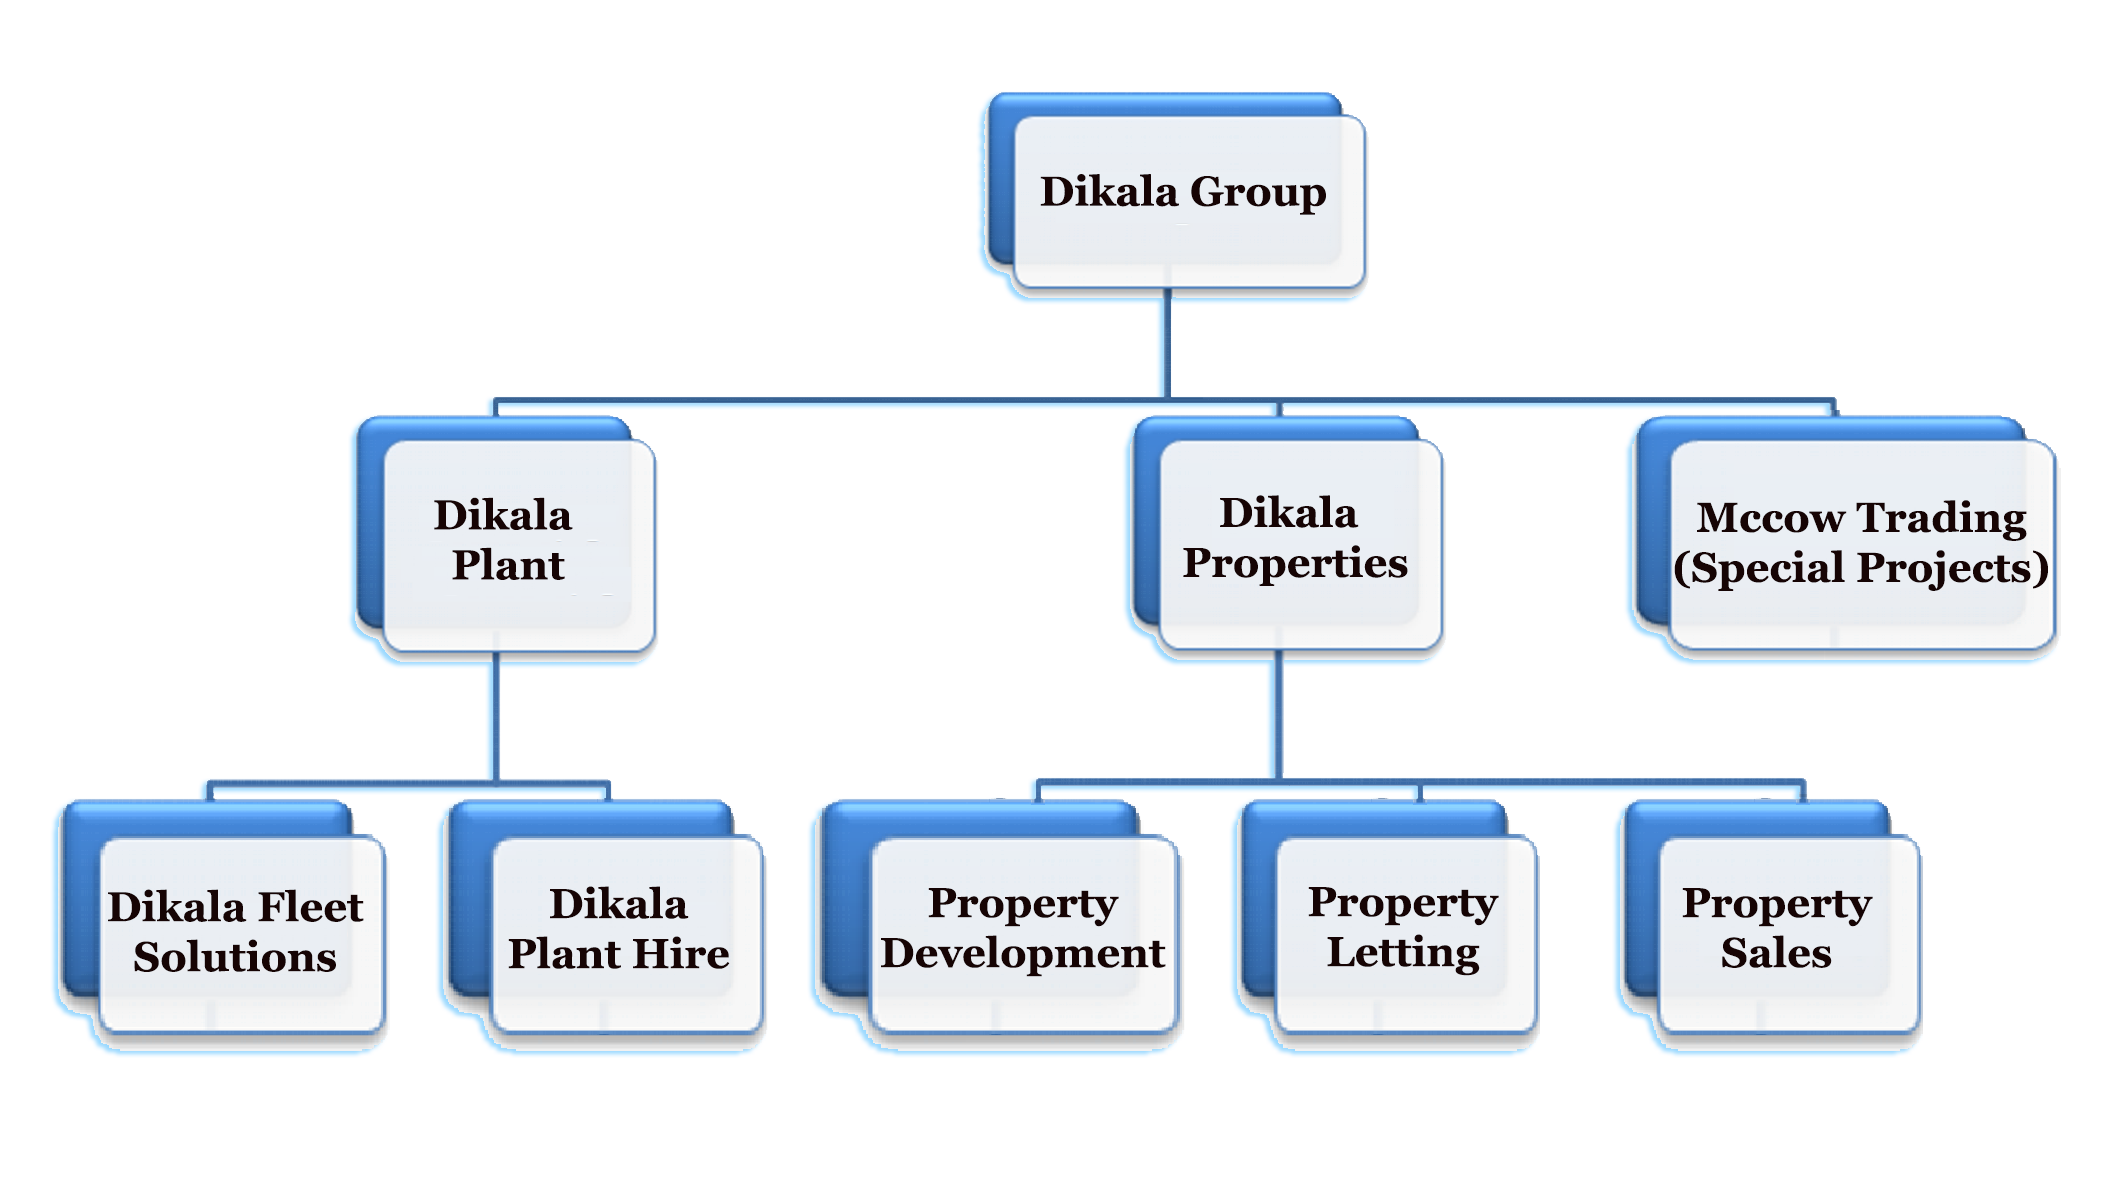 Dikala Group Structure